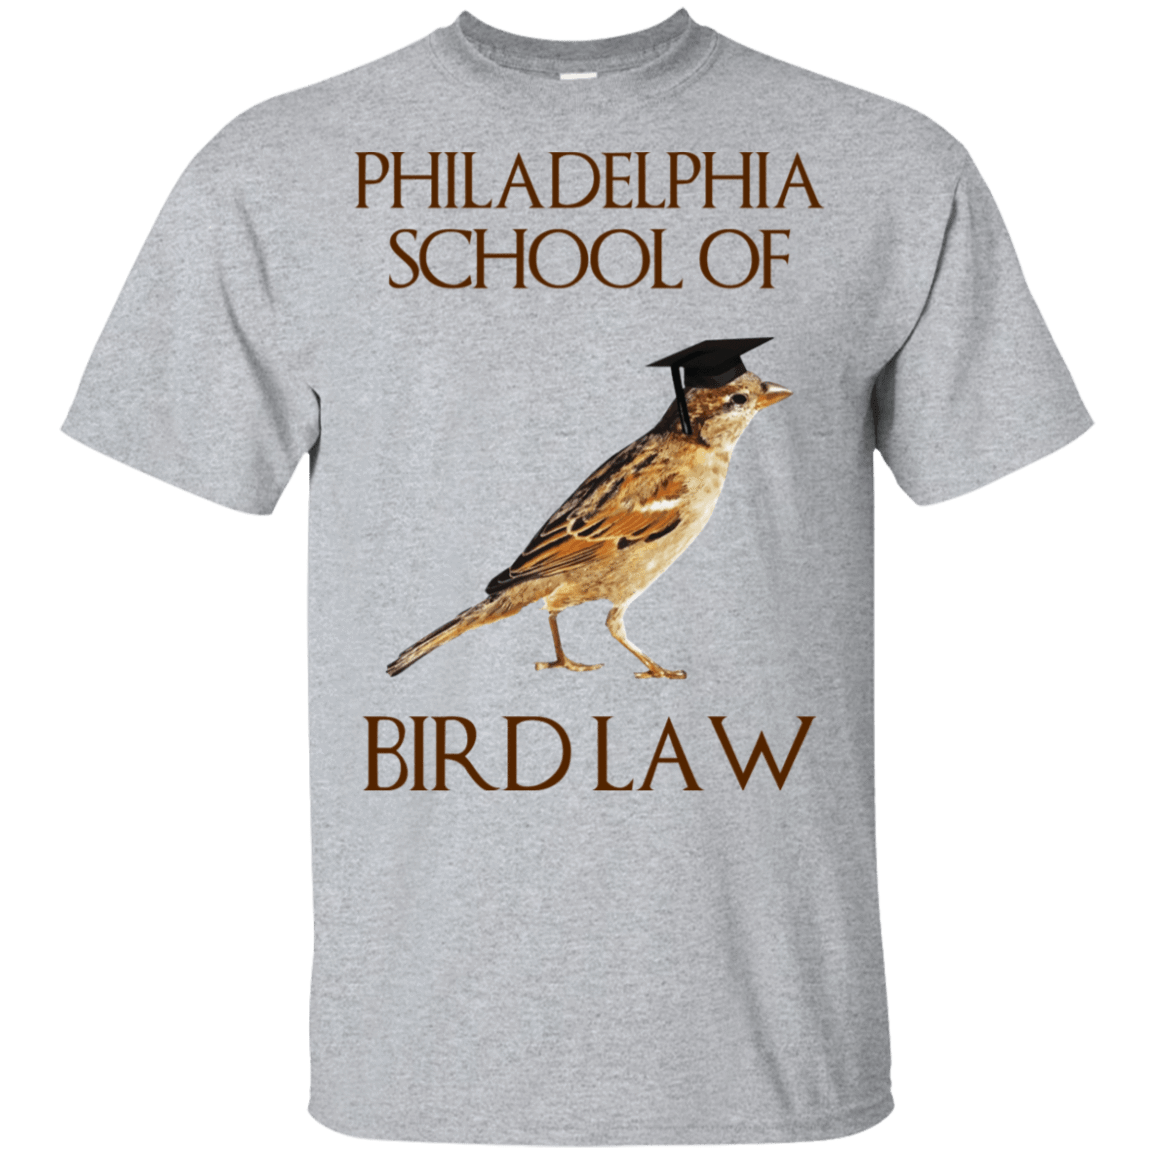 Philadelphia School of Bird Law 22-115-73057593-254 - Tee Ript